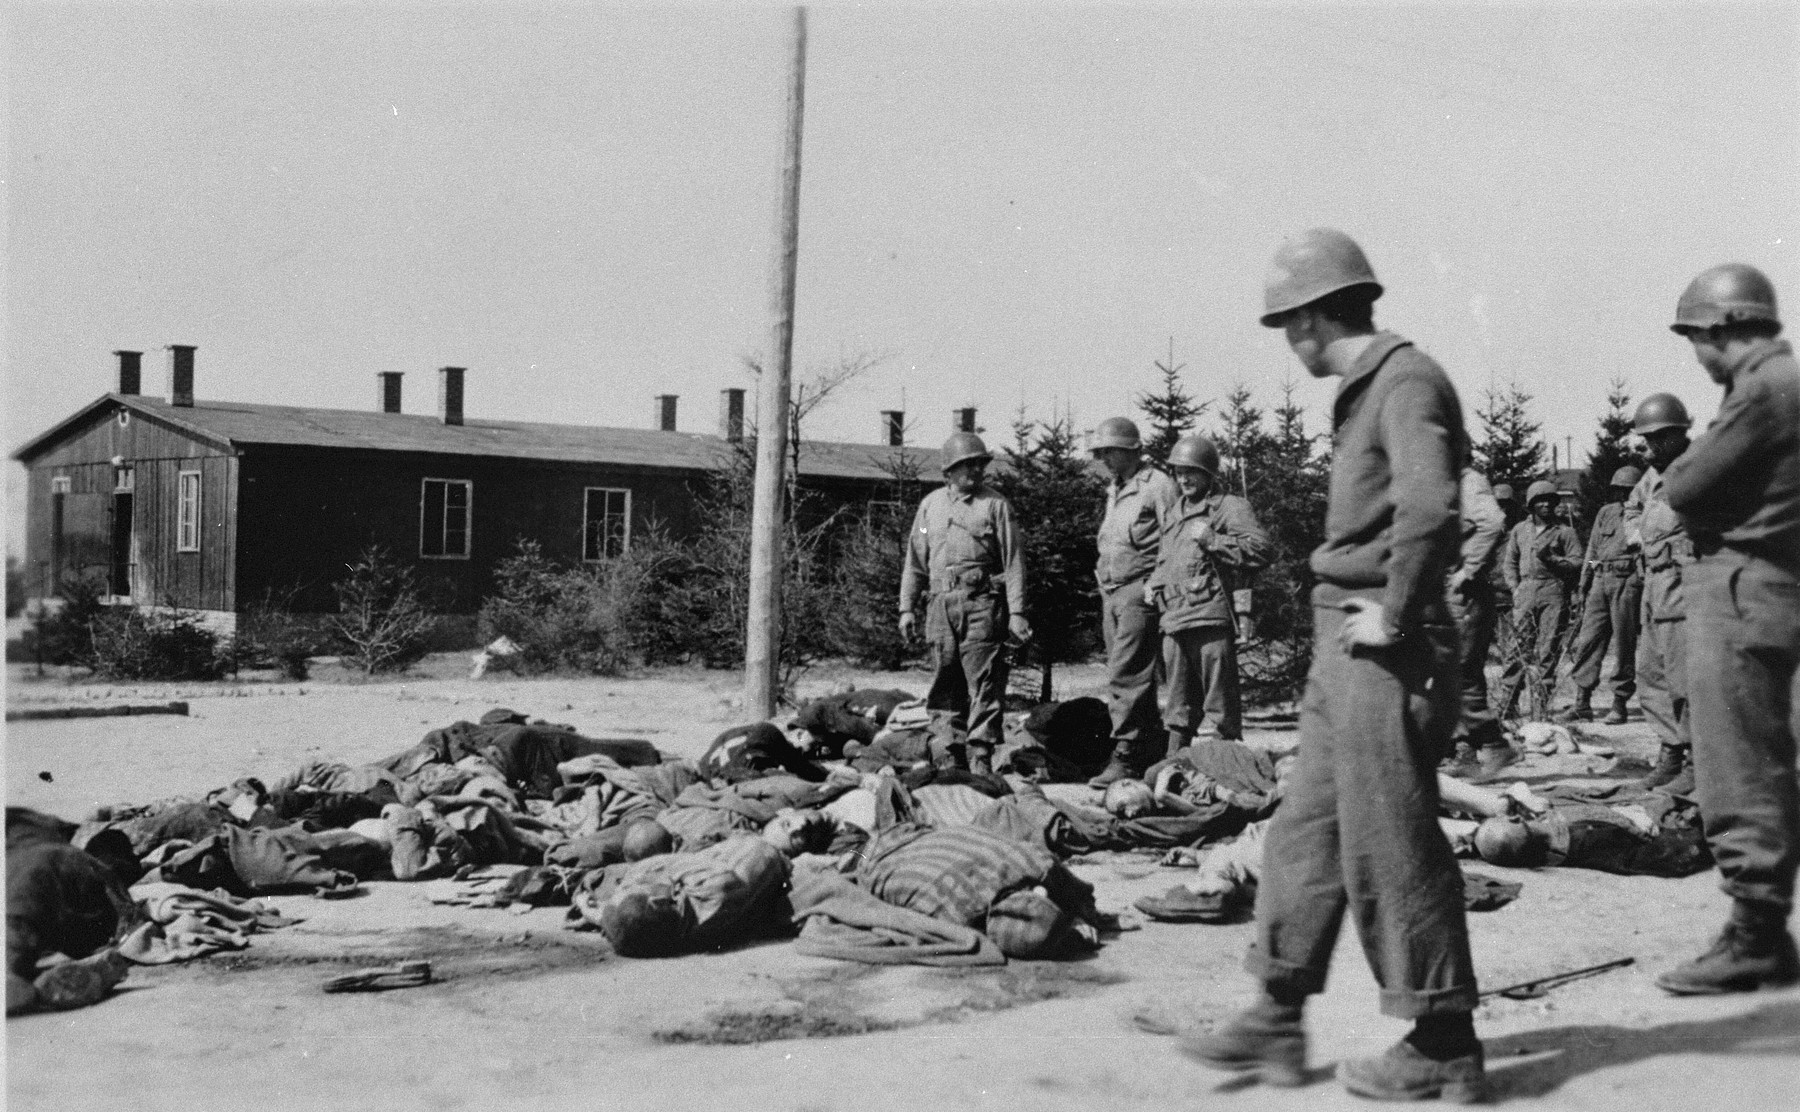 American soldiers view the bodies of prisoners that lie strewn along the road in the newly liberated Ohrdruf concentration camp.